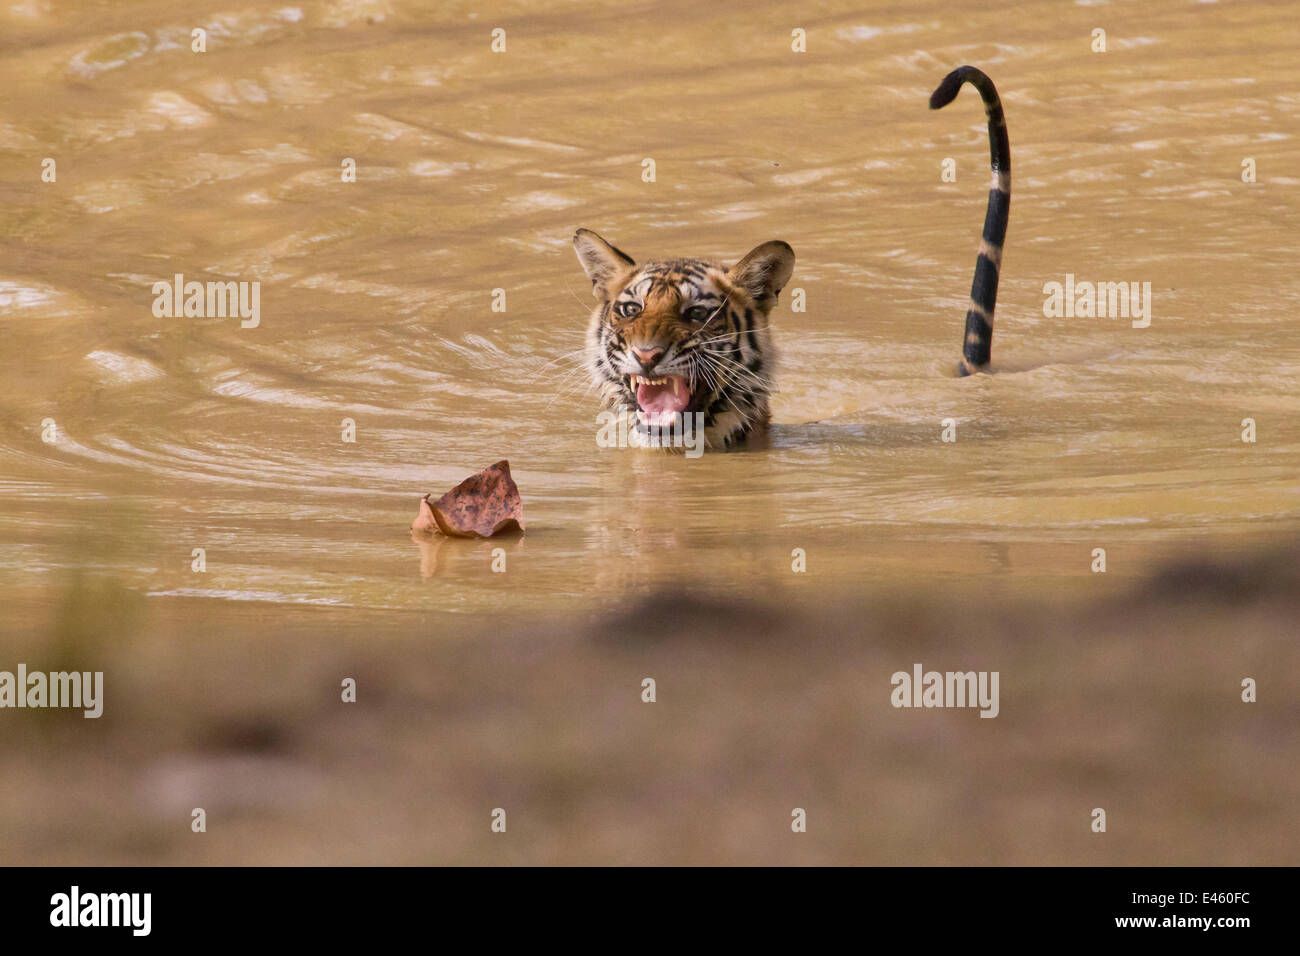 Young Tigress (Panthera tigris), 22 month, being frightened by a dead leaf. Banghavgarh National Park, India, April. - Stock Image